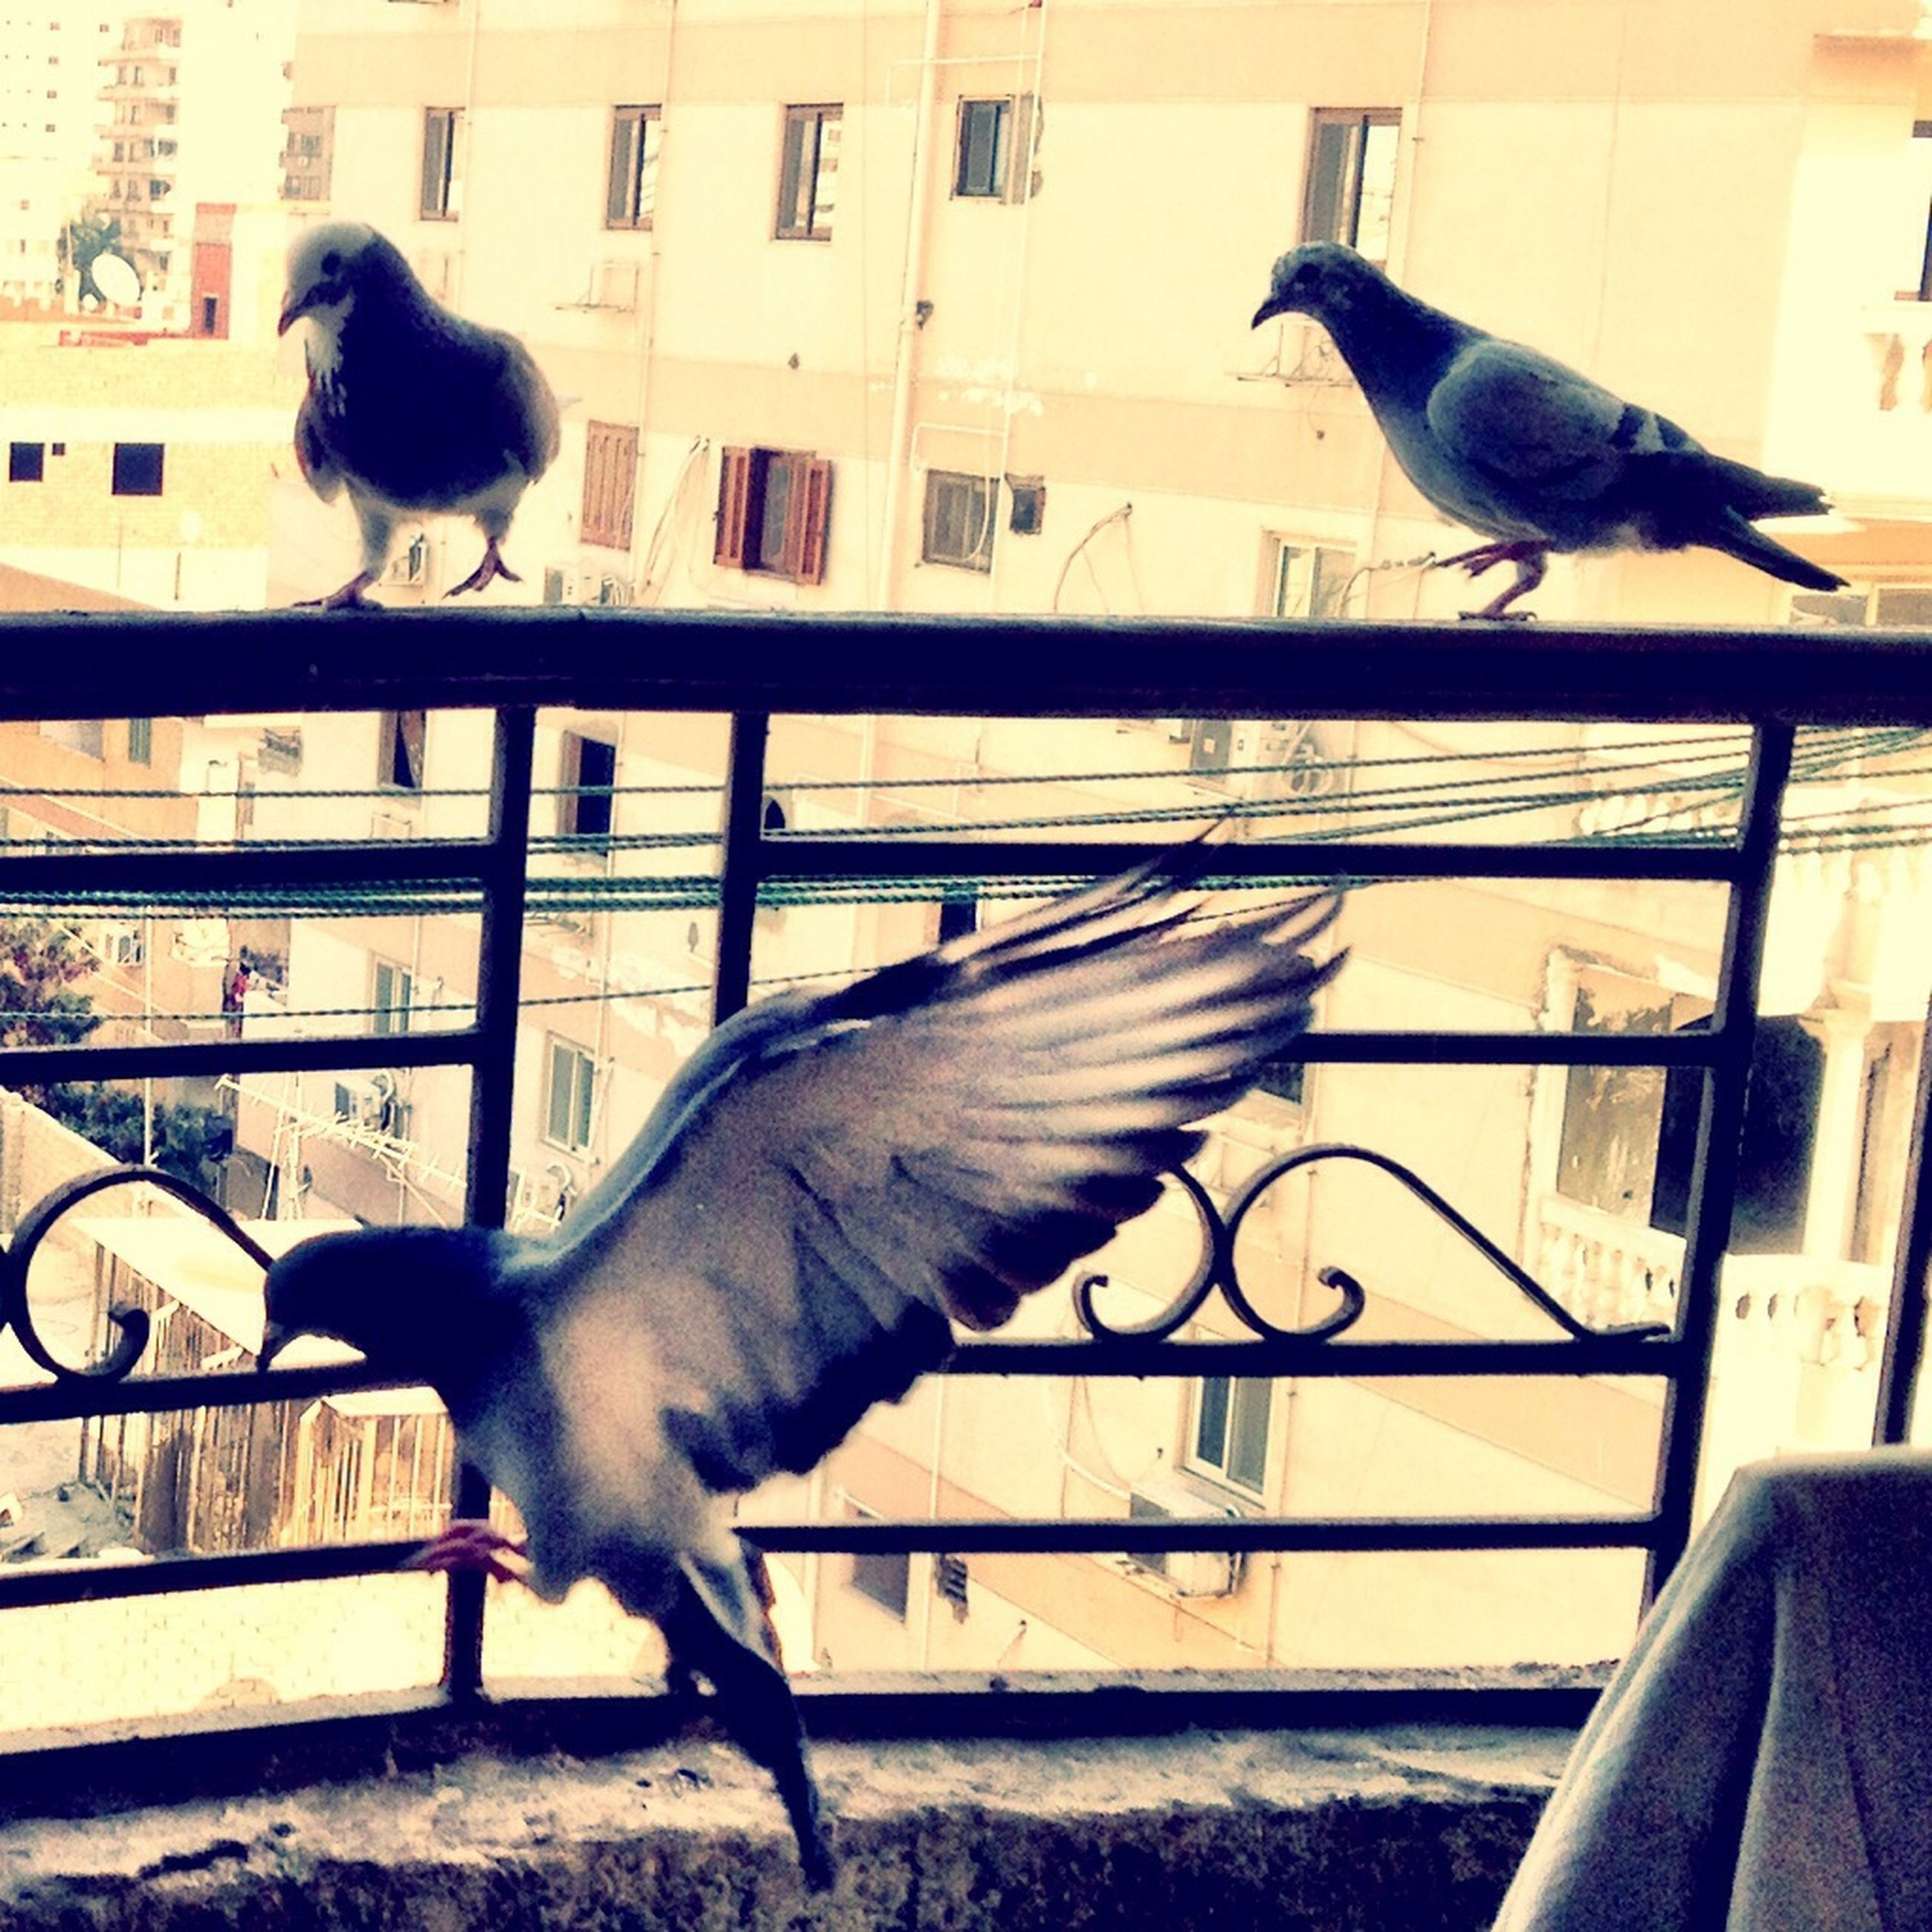 bird, animal themes, animals in the wild, wildlife, pigeon, perching, railing, one animal, flying, built structure, building exterior, architecture, seagull, two animals, spread wings, city, full length, three animals, zoology, outdoors